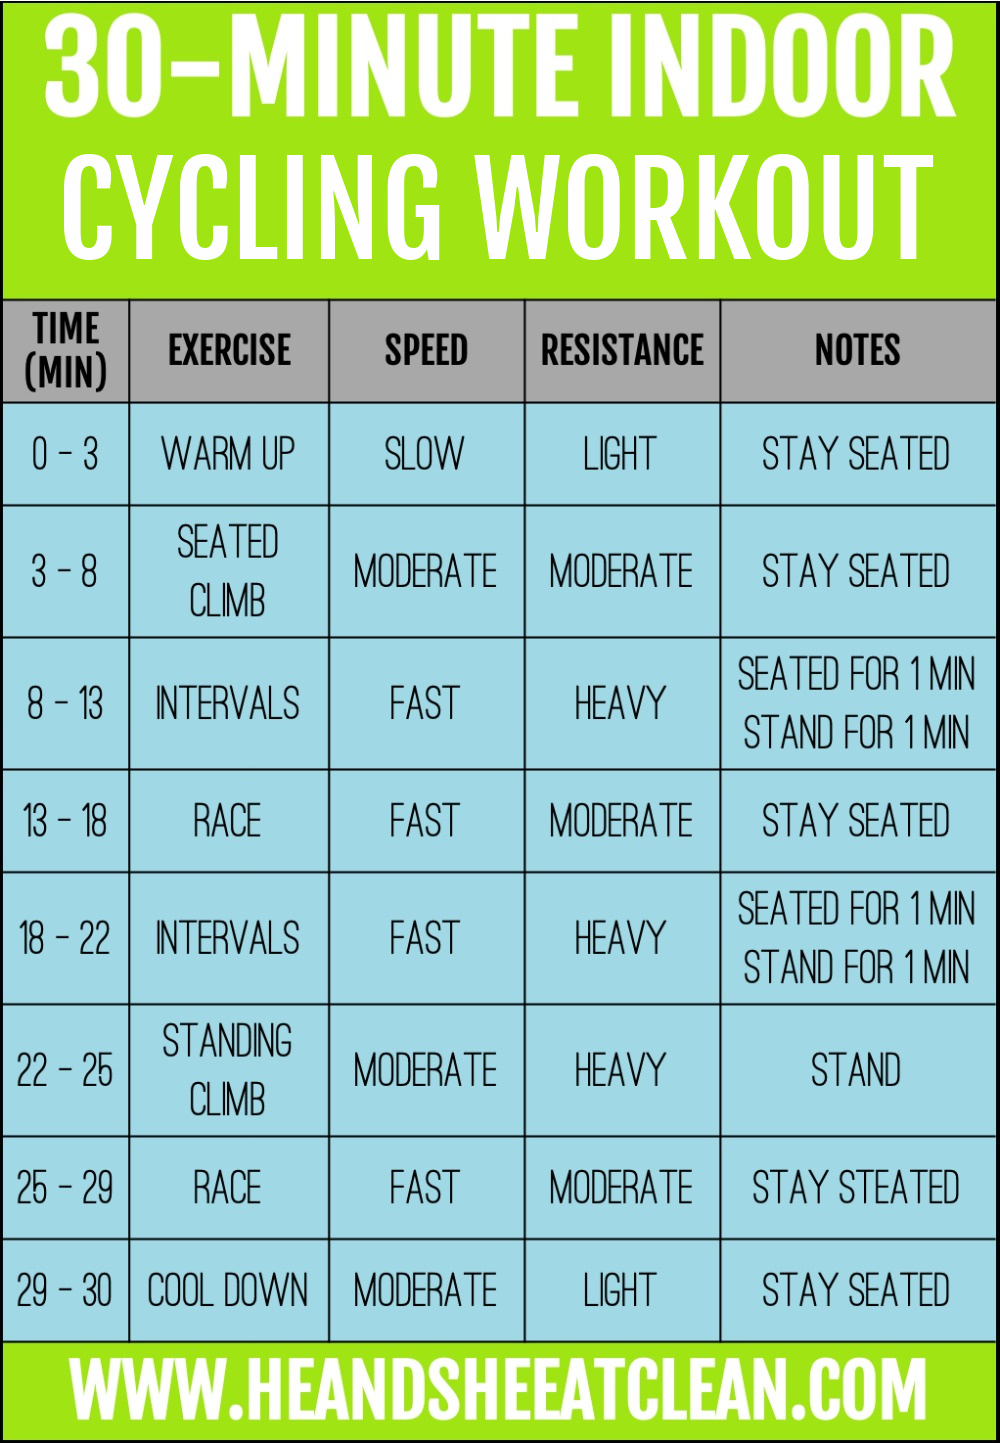 text reads 30-minute indoor cycling workout with listed workout